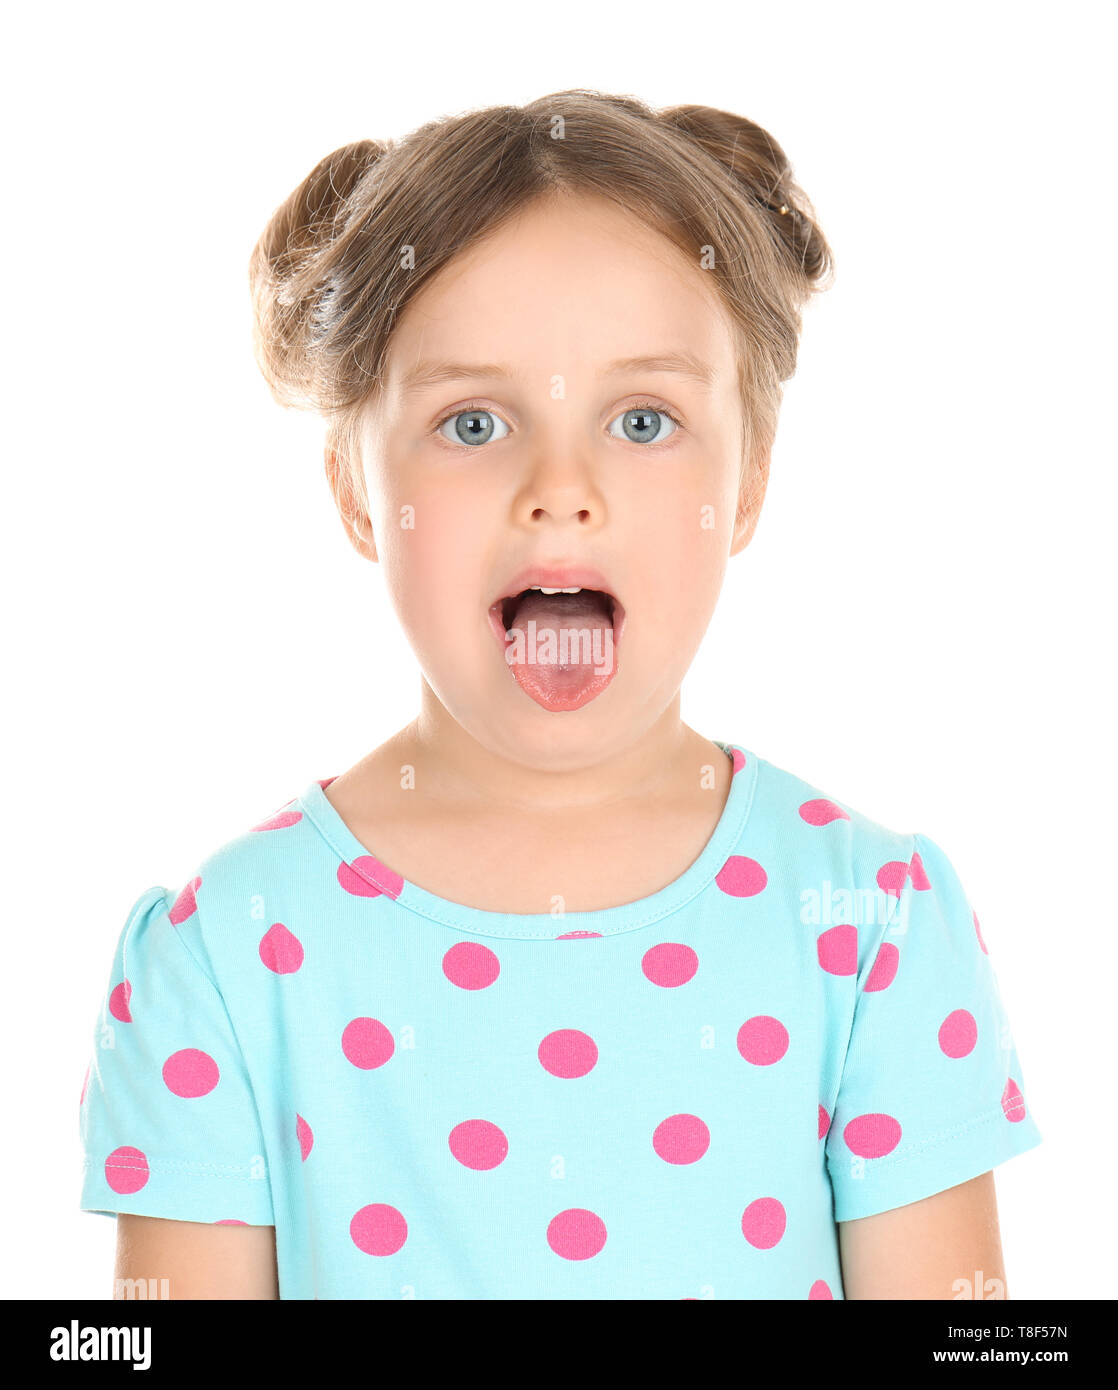 Cute little girl showing tongue on white background - Stock Image